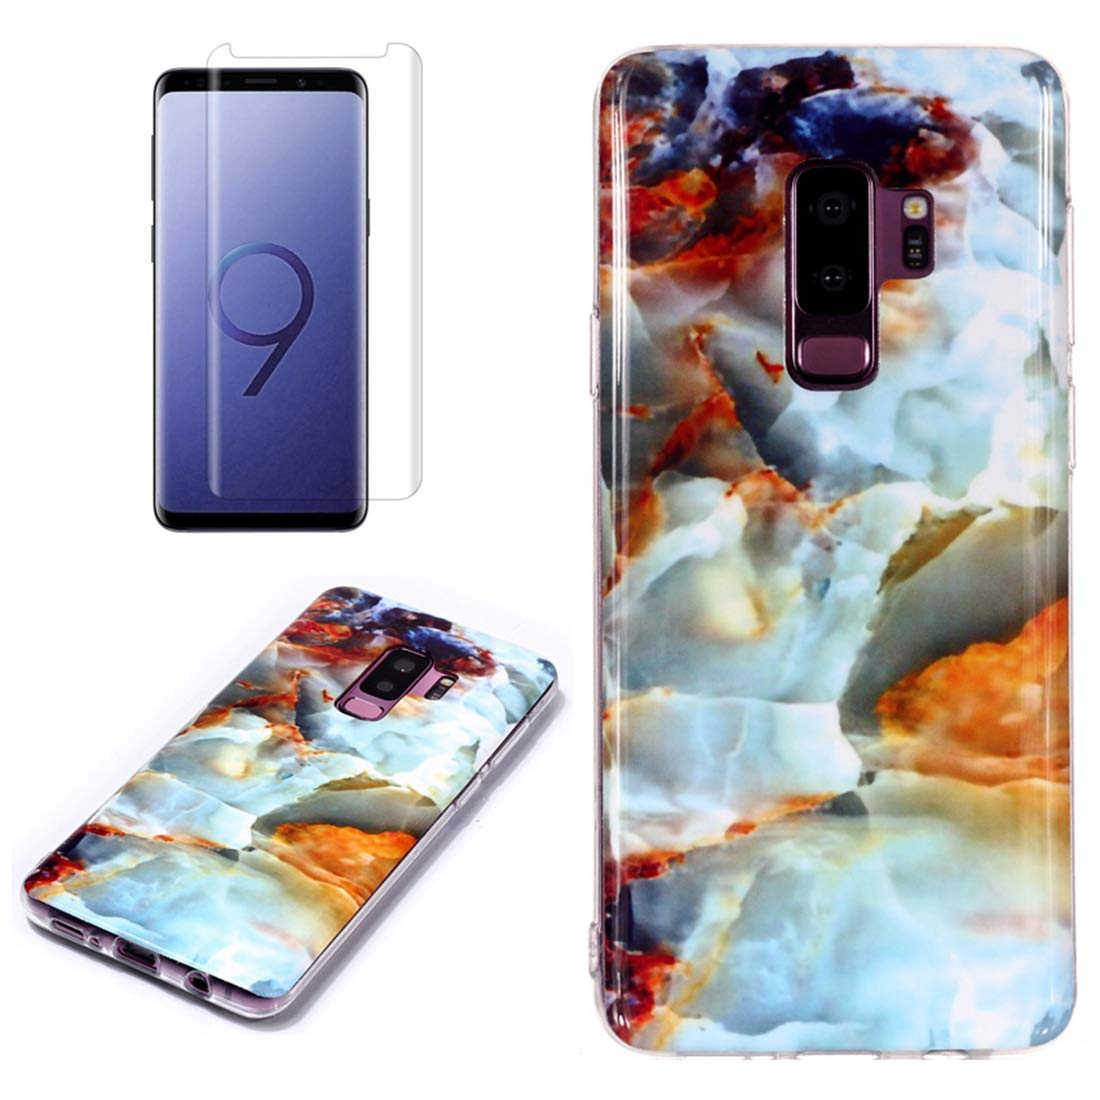 for Samsung Galaxy S9 Plus Marble Case with Screen Protector,Unique Pattern Design Skin Ultra Thin Slim Fit Soft Gel Silicone Case,QFFUN Shockproof Anti-Scratch Protective Back Cover - Fire Cloud